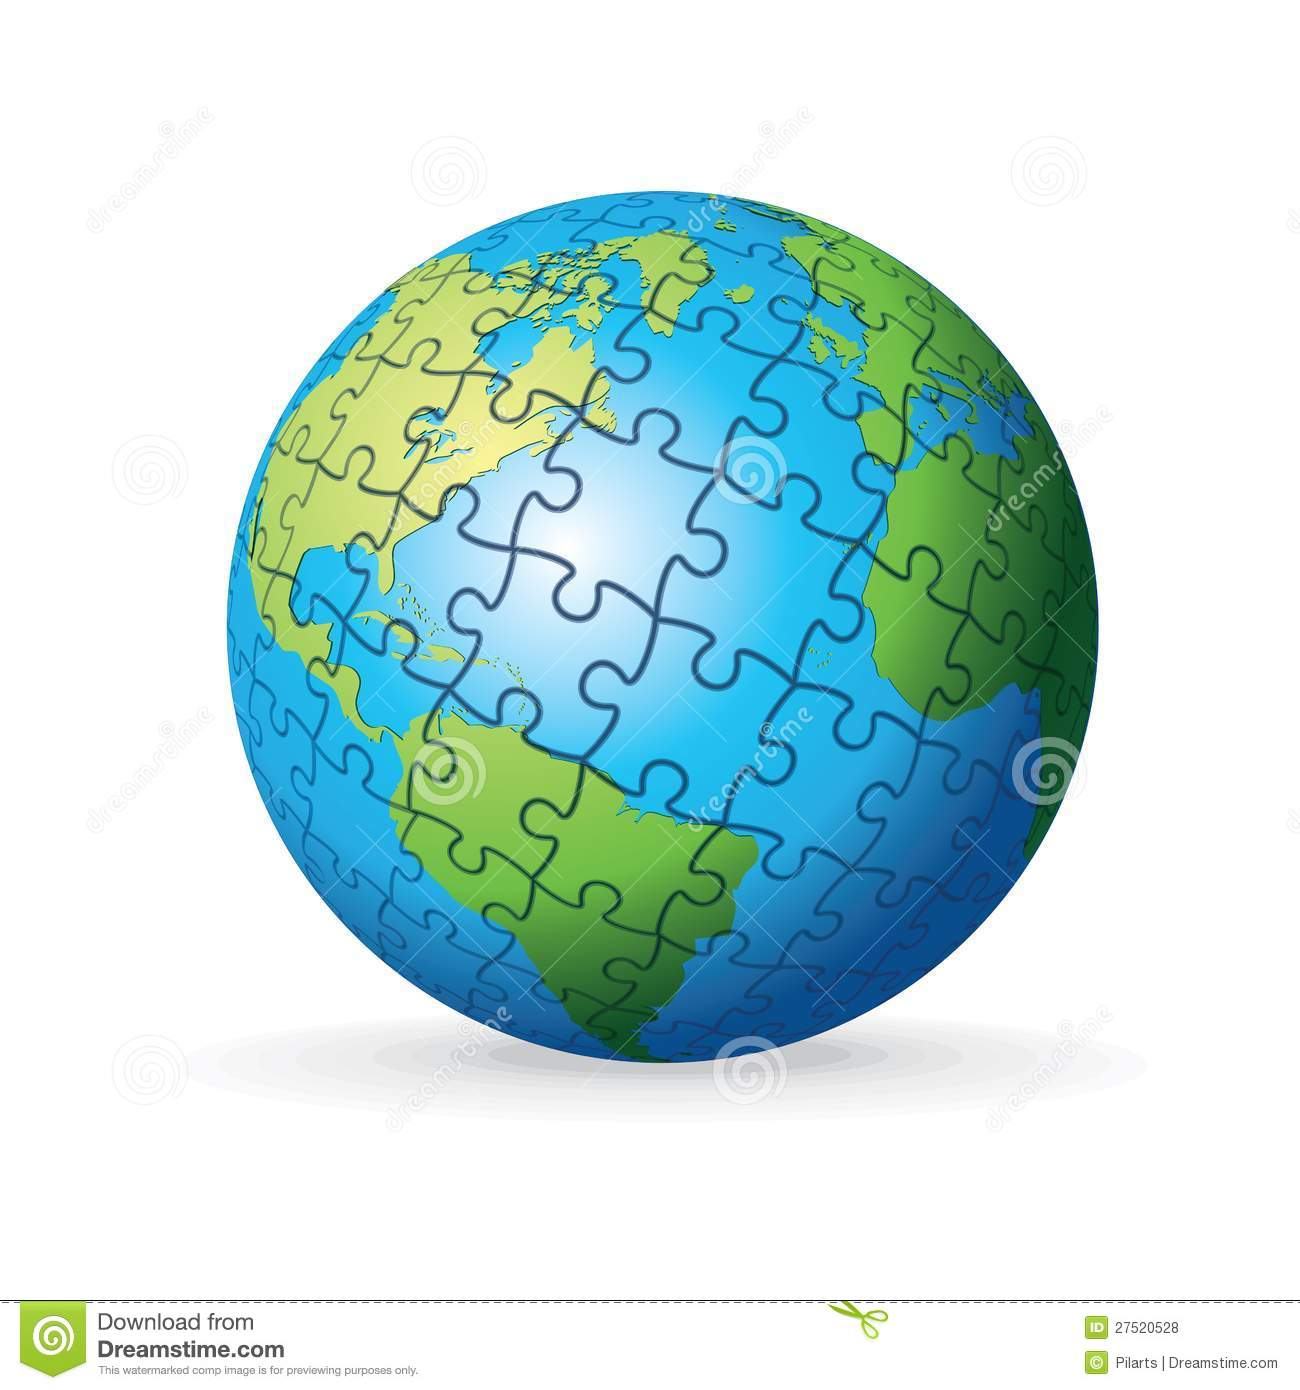 puzzle earth globe stock vector  illustration of spin